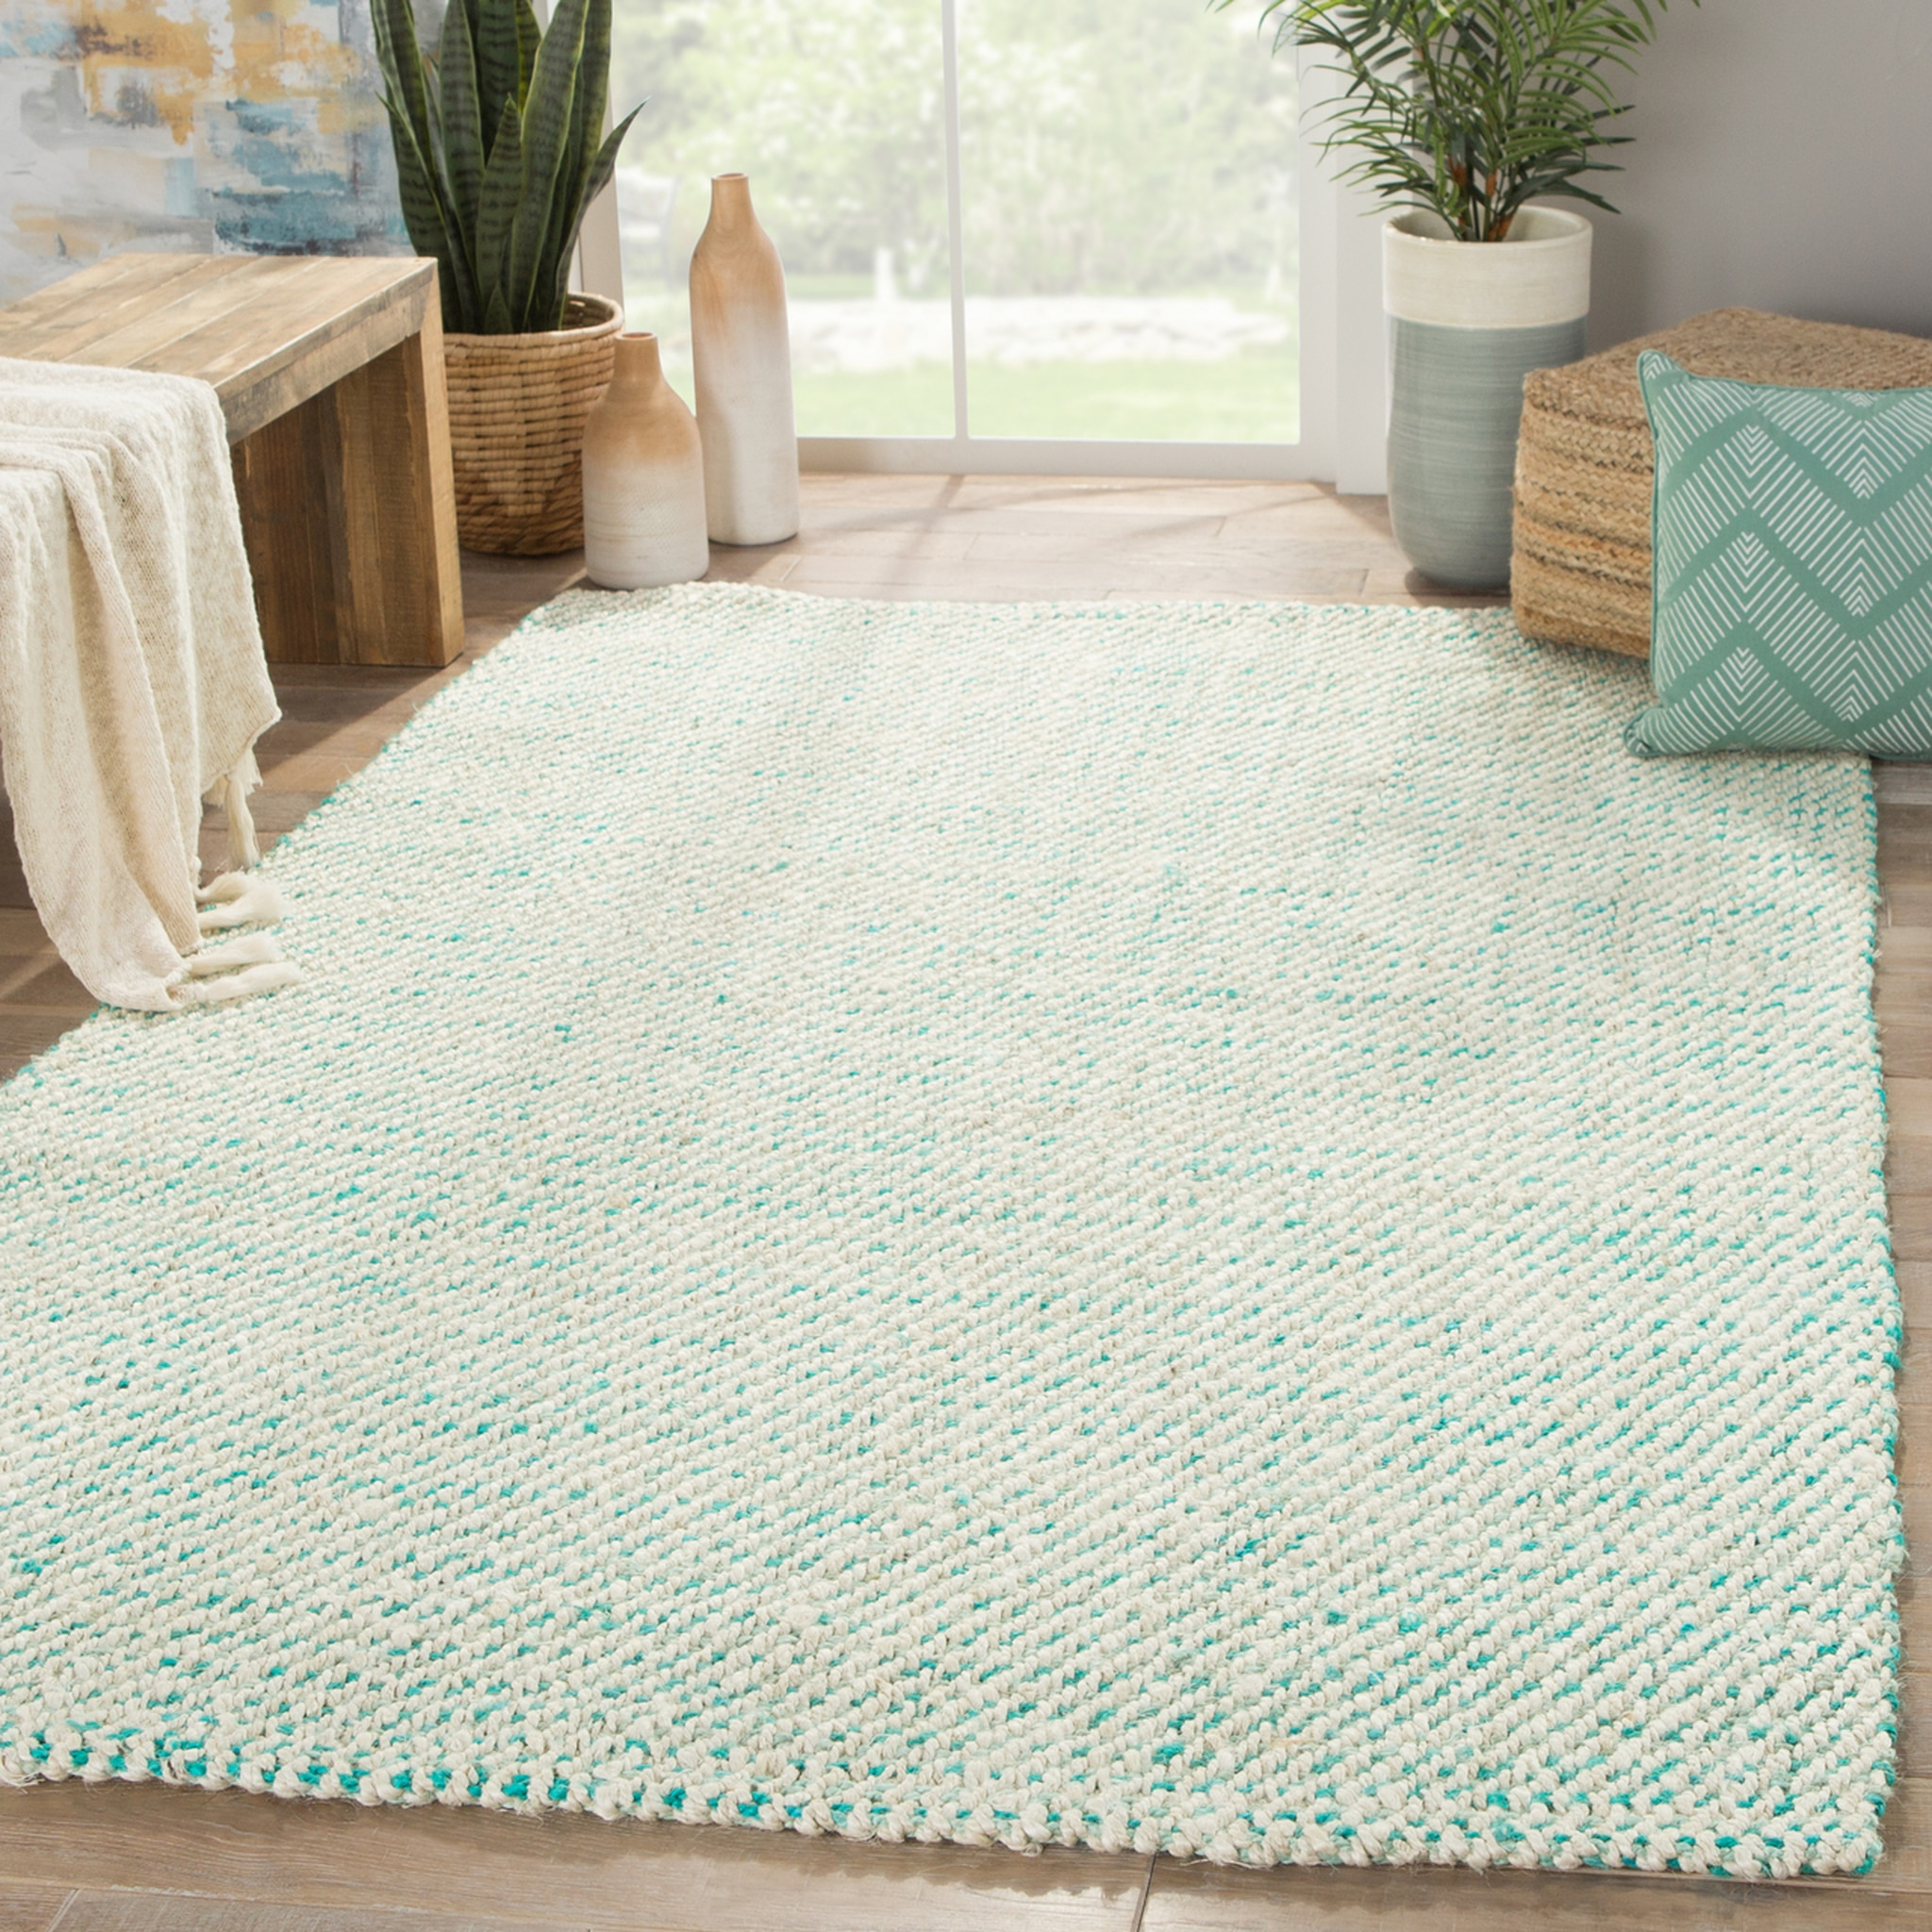 Clearance Rugs - Save 25-50%